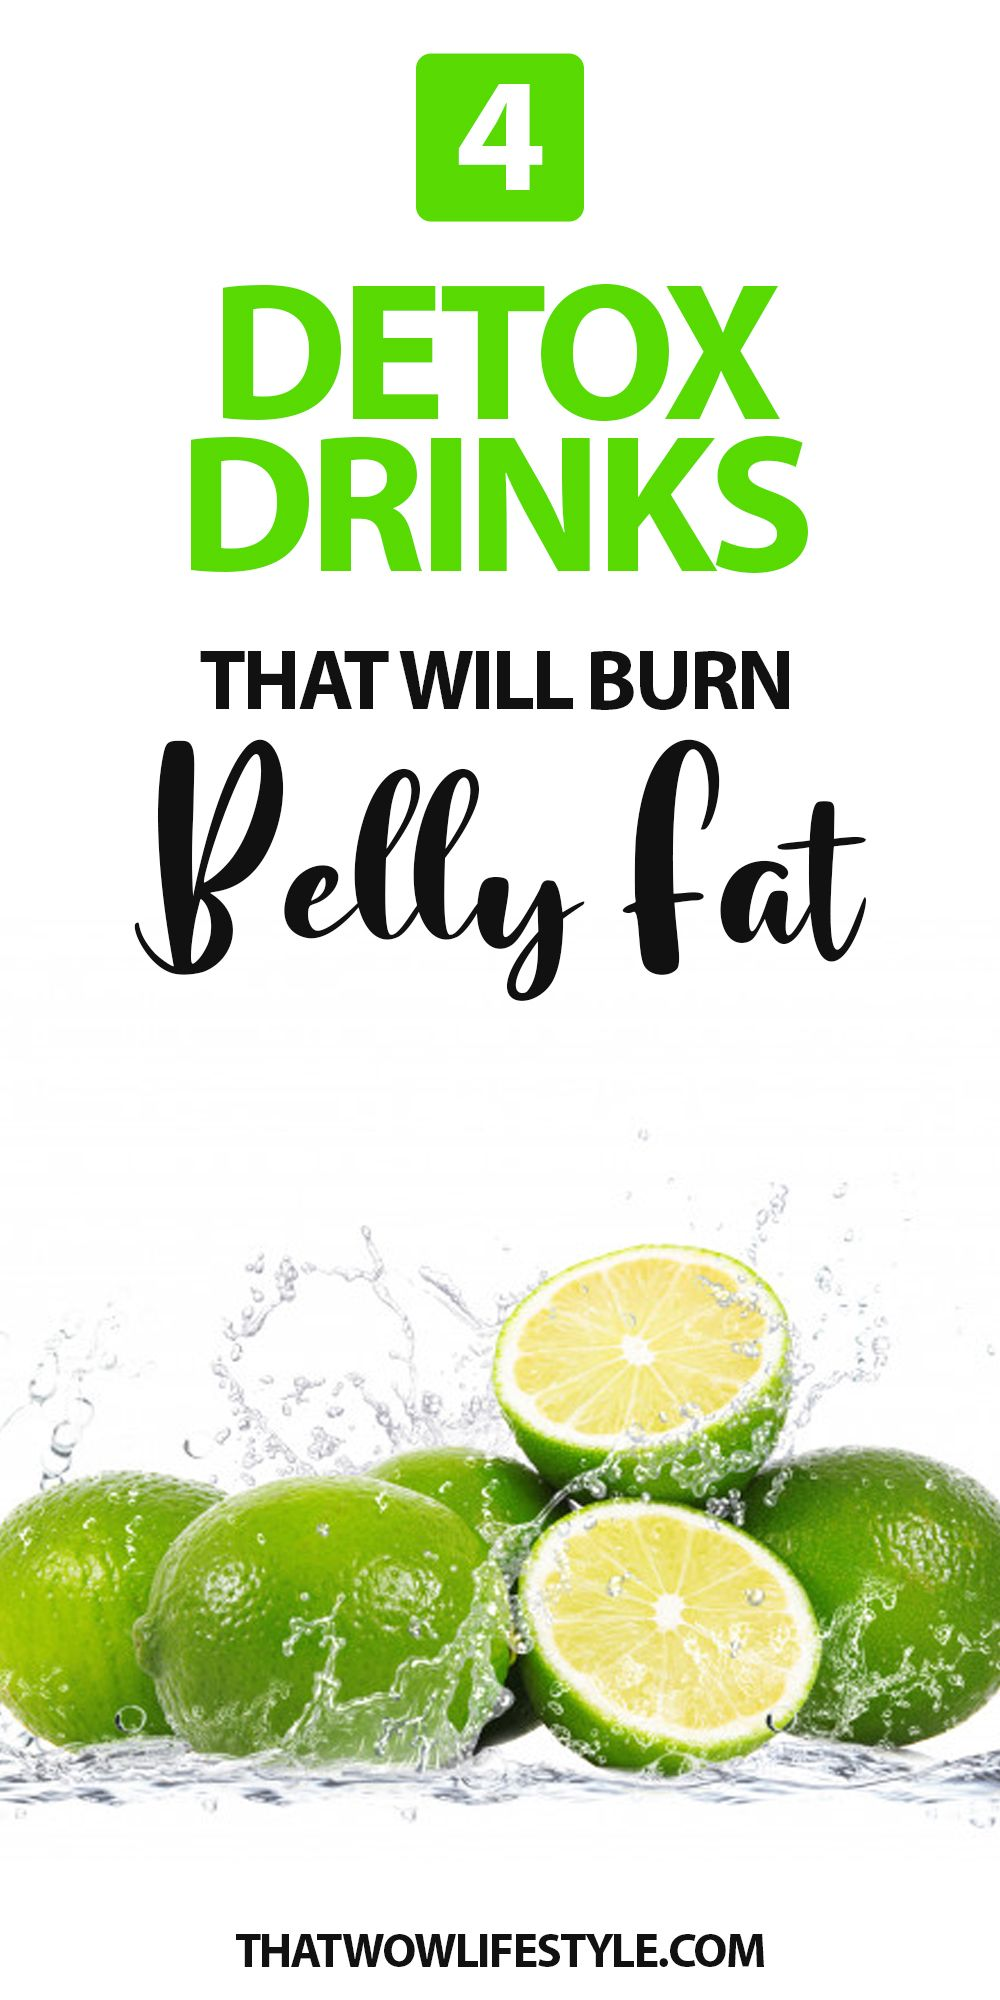 4 Detox Drinks That Will Burn Belly Fat